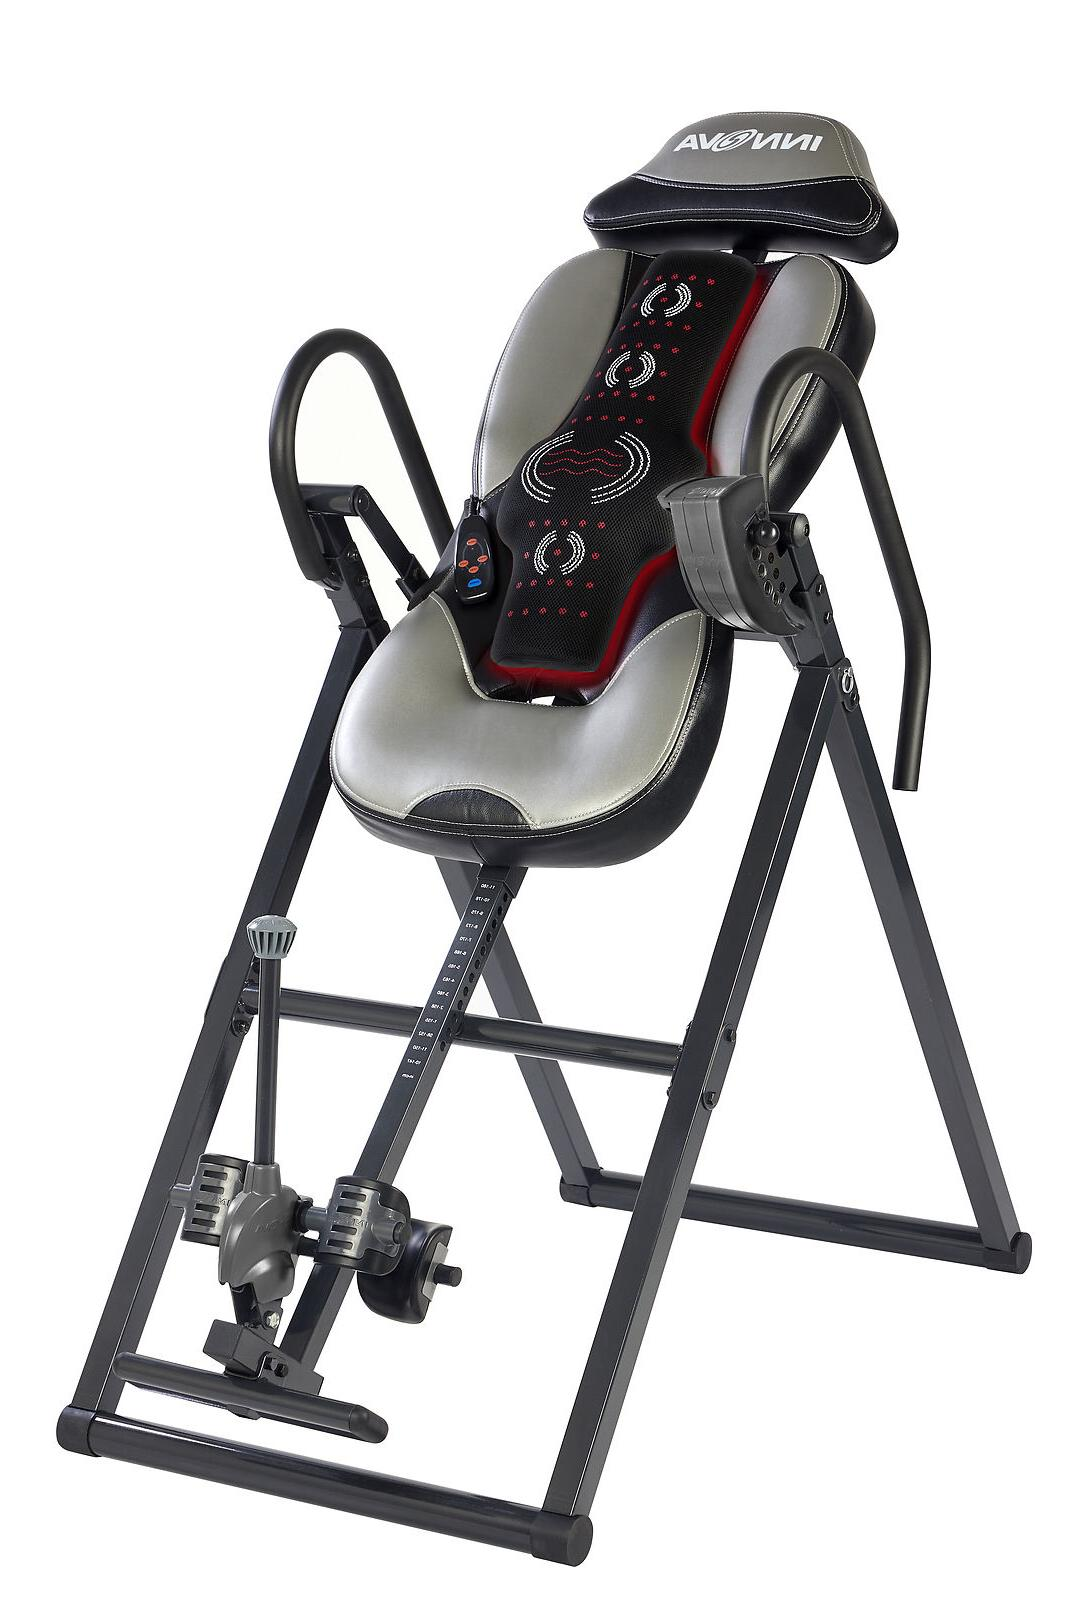 Heat Massage Inversion Therapy Table Therapeutic Fitness Bac